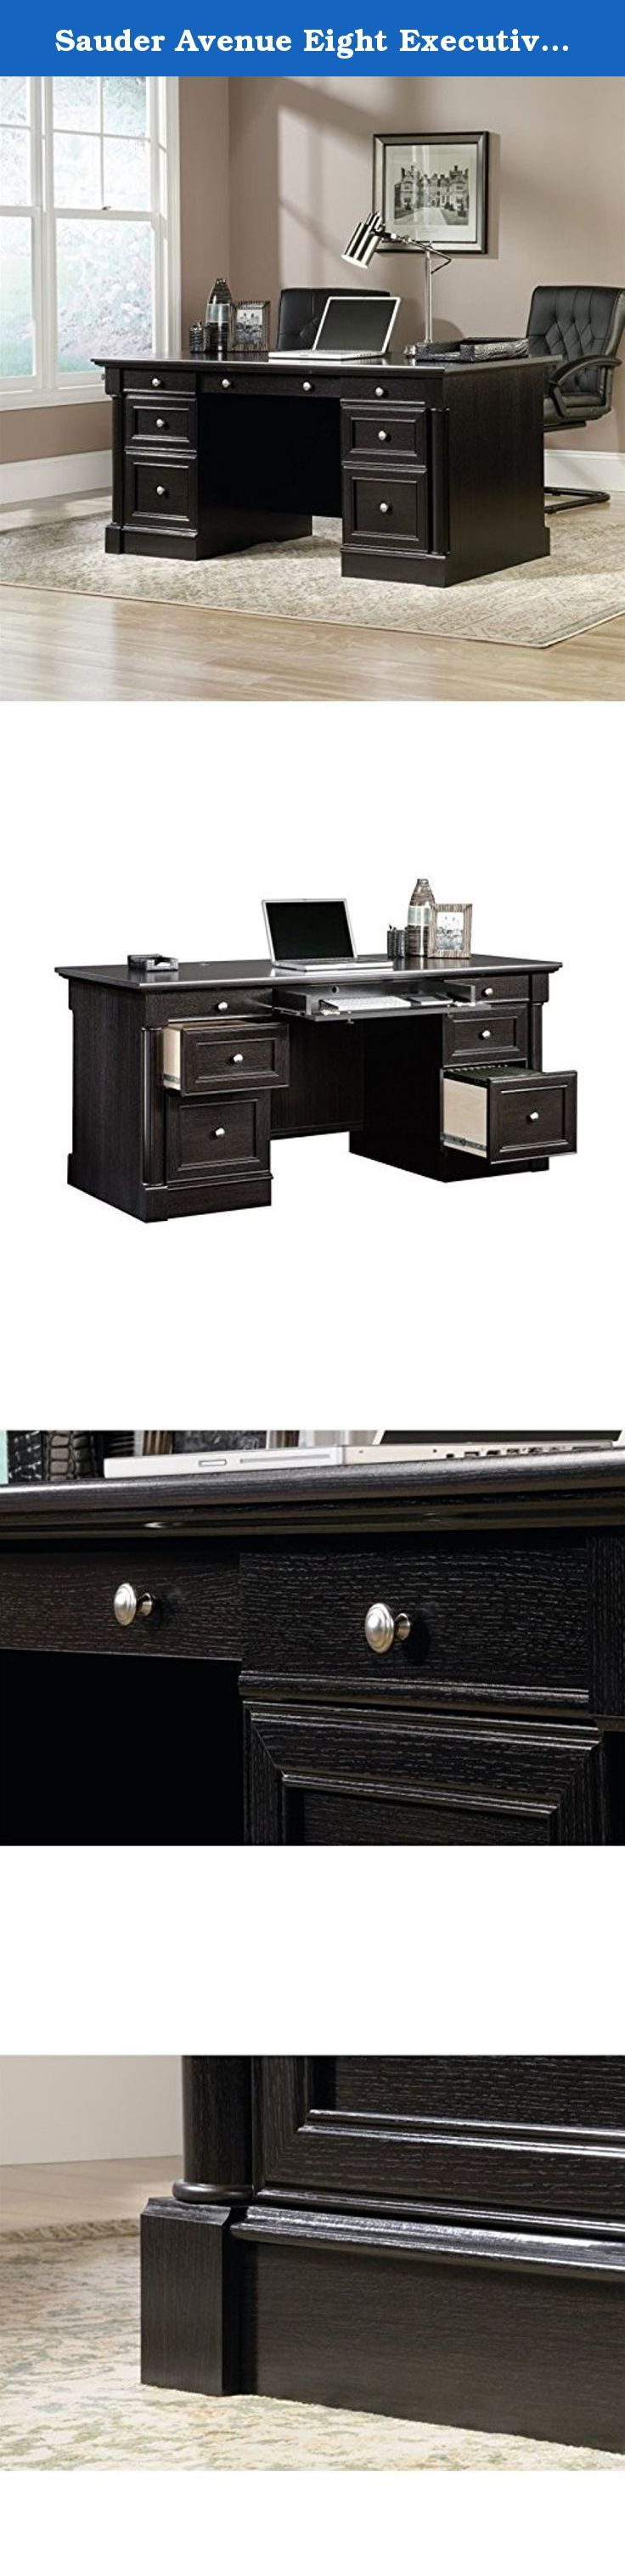 Sauder Avenue Eight Executive Desk. You don't have to make a boss's salary to furnish your office like you're CEO. The Sauder Avenue Eight Executive Bank is as sophisticated design crafted of solid wood in a dark wind oak finish. In addition to its generous top and captivating looks, the desk also features a flip-down keyboard tray, two pencil drawers, and two large lower file drawers perfect for hanging legal-size files. About Sauder Sauder is North America's leading producer of...